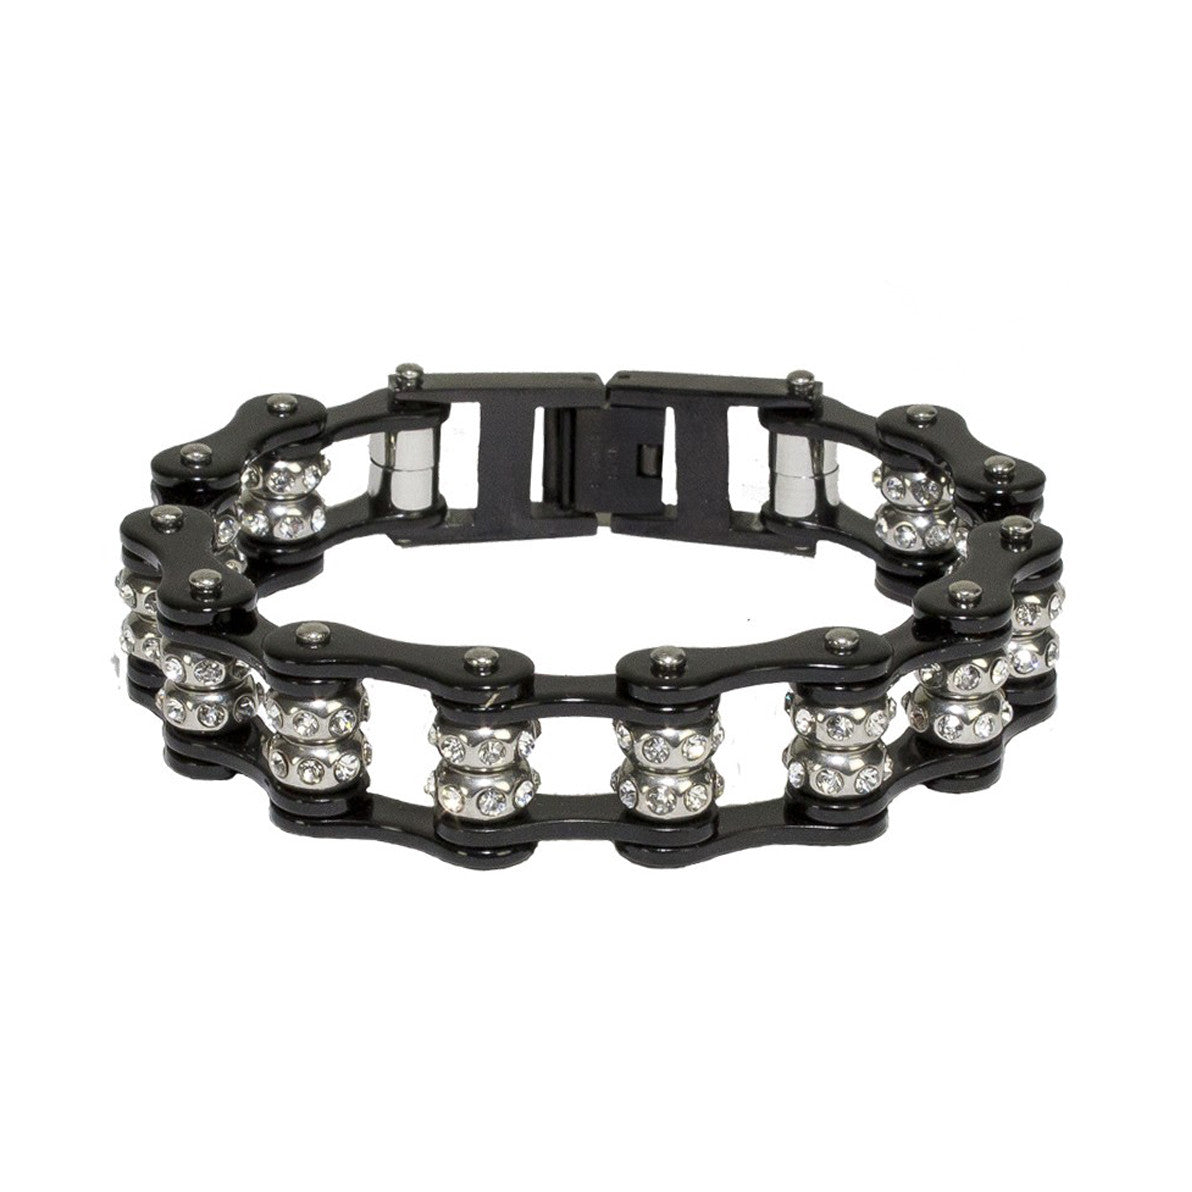 Black Motorcycle Chain Bracelet with Gemstones